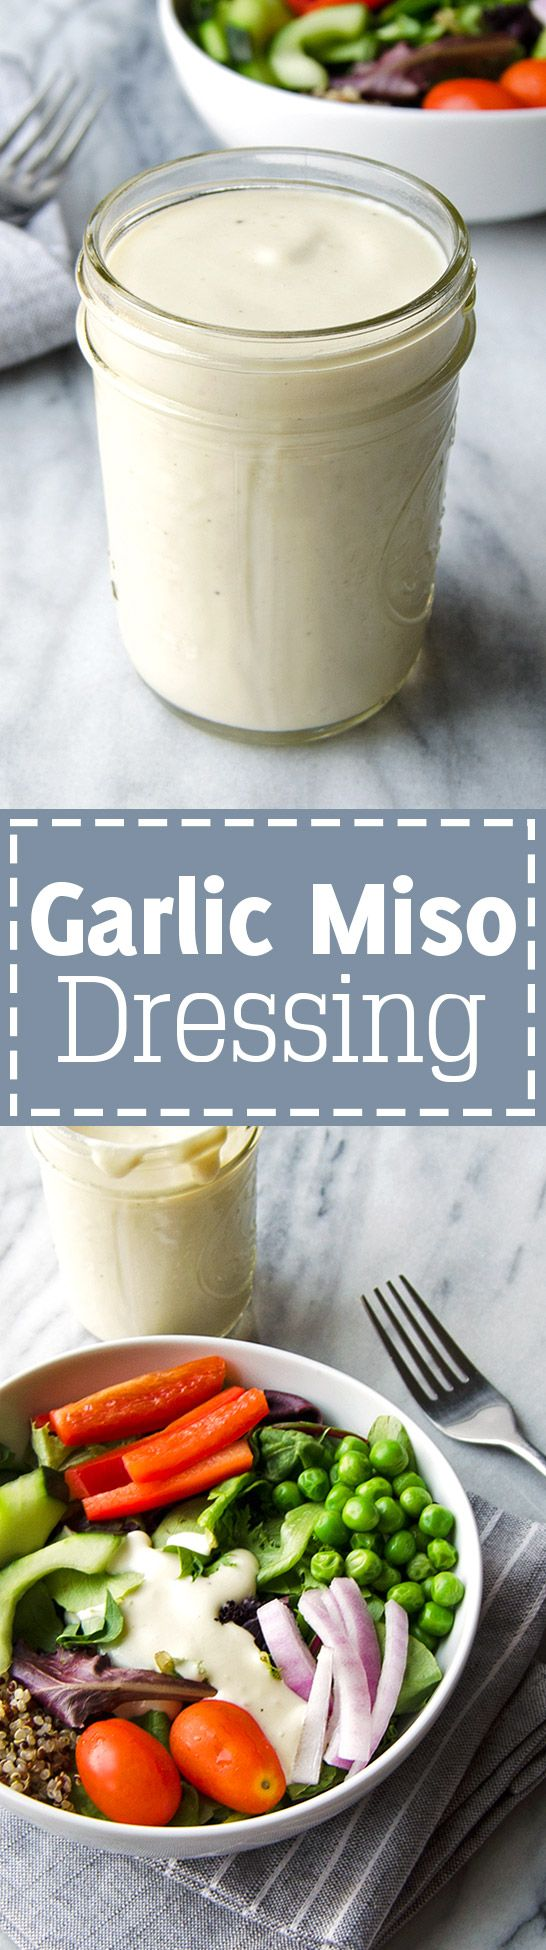 cheap RECIPE  Vegan creamy flavor handbags for salads dip  Super NomingthruLife com you and and on with   designer packed  Dressing ranch would  amp  use a at dressing   as Garlic   Use Miso or GF  anything